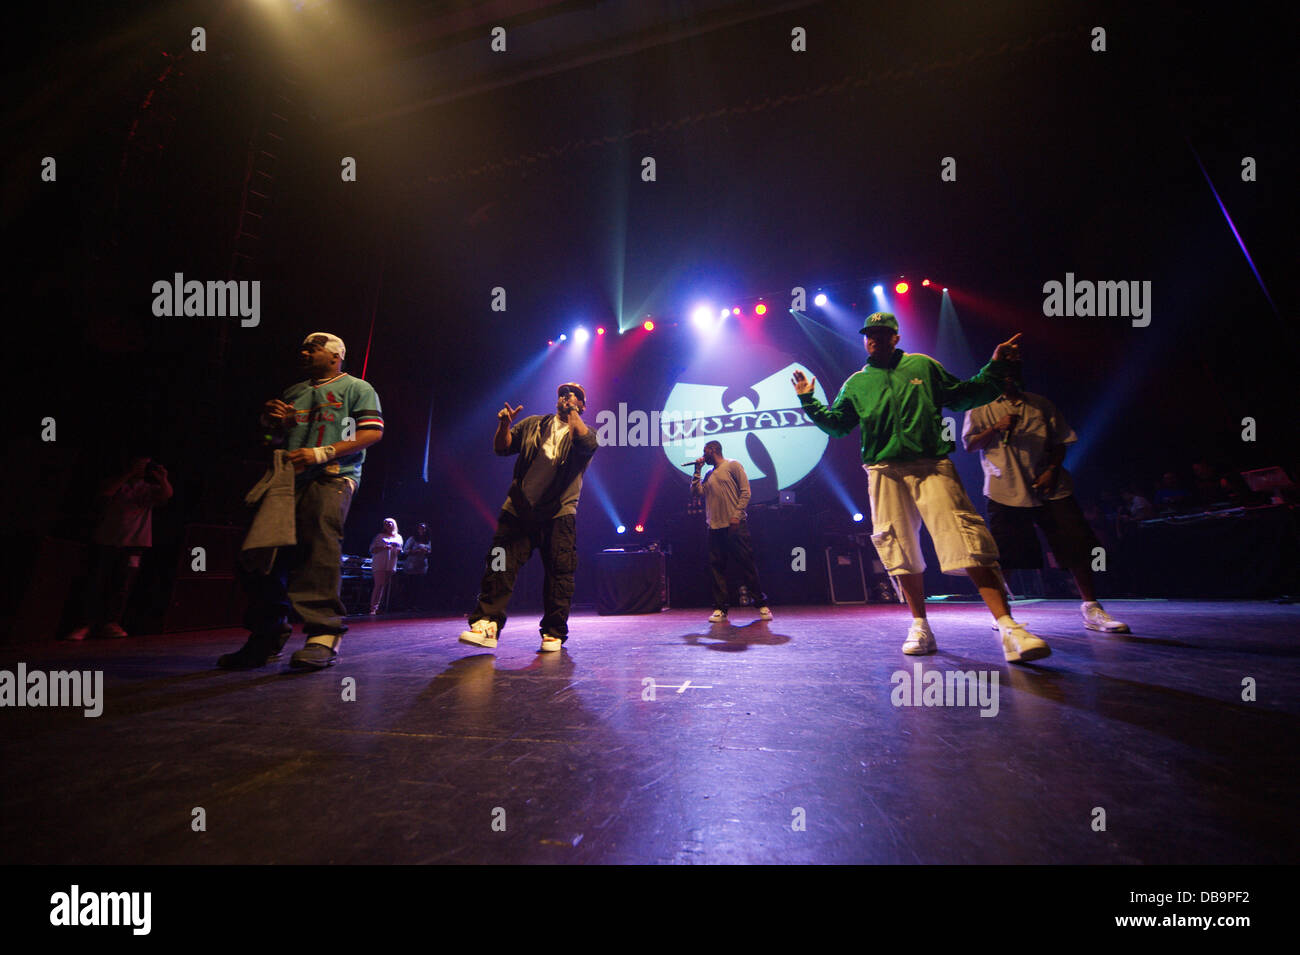 Manchester, UK  25th July 2013  Wu-Tang Clan are back! The